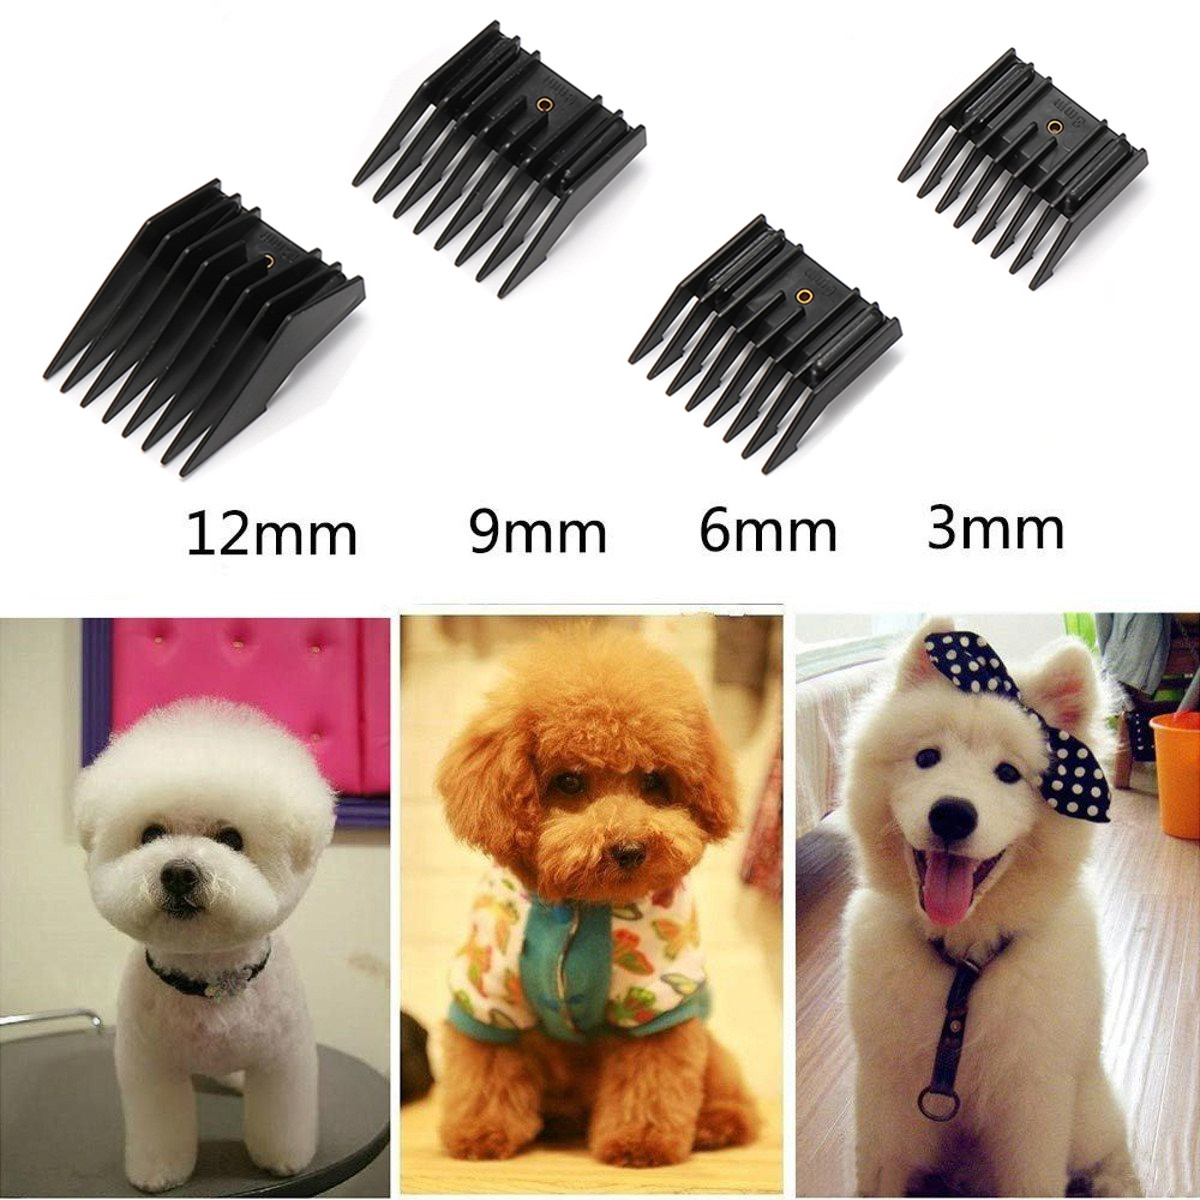 110-240V Electric Animal Pet Dog Cat Hair Trimmer